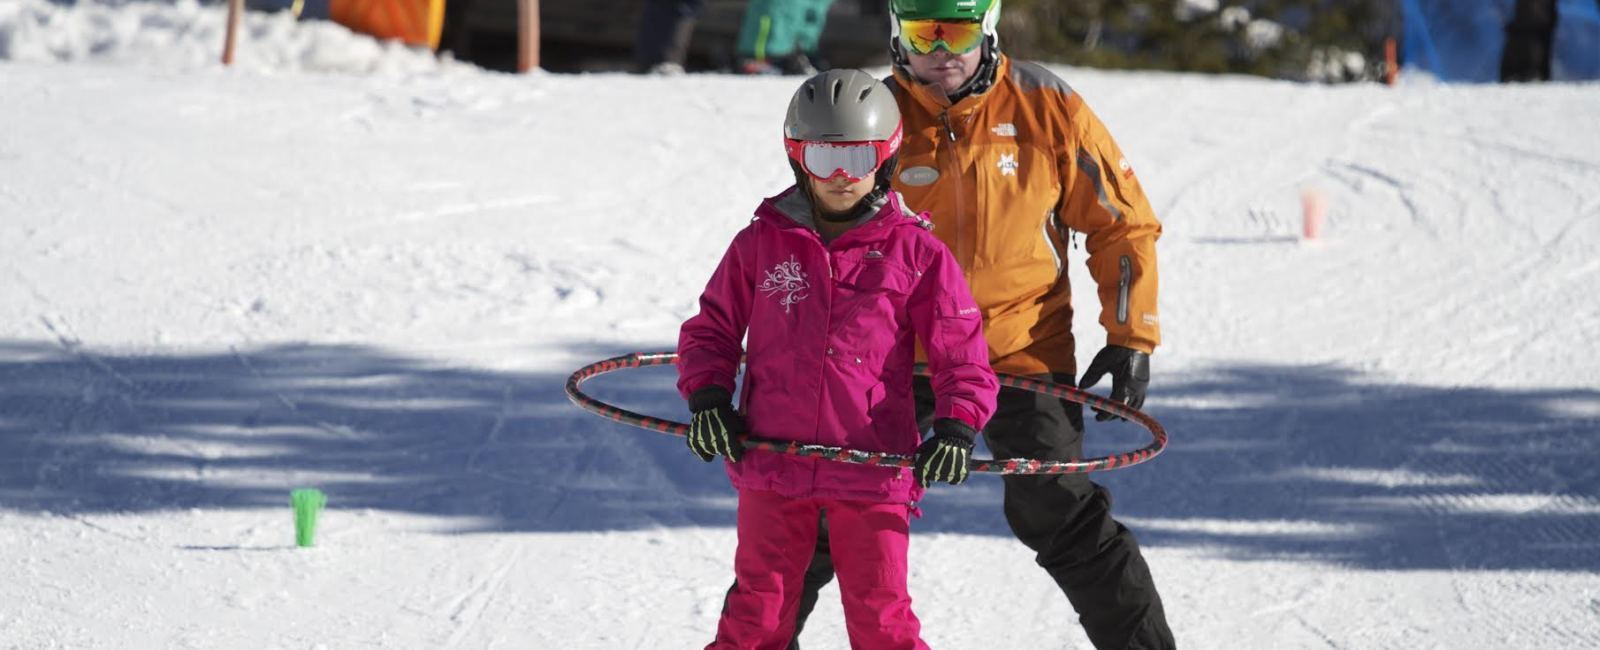 Learning to Ski and Ride: Why Multi-Day Lessons Win